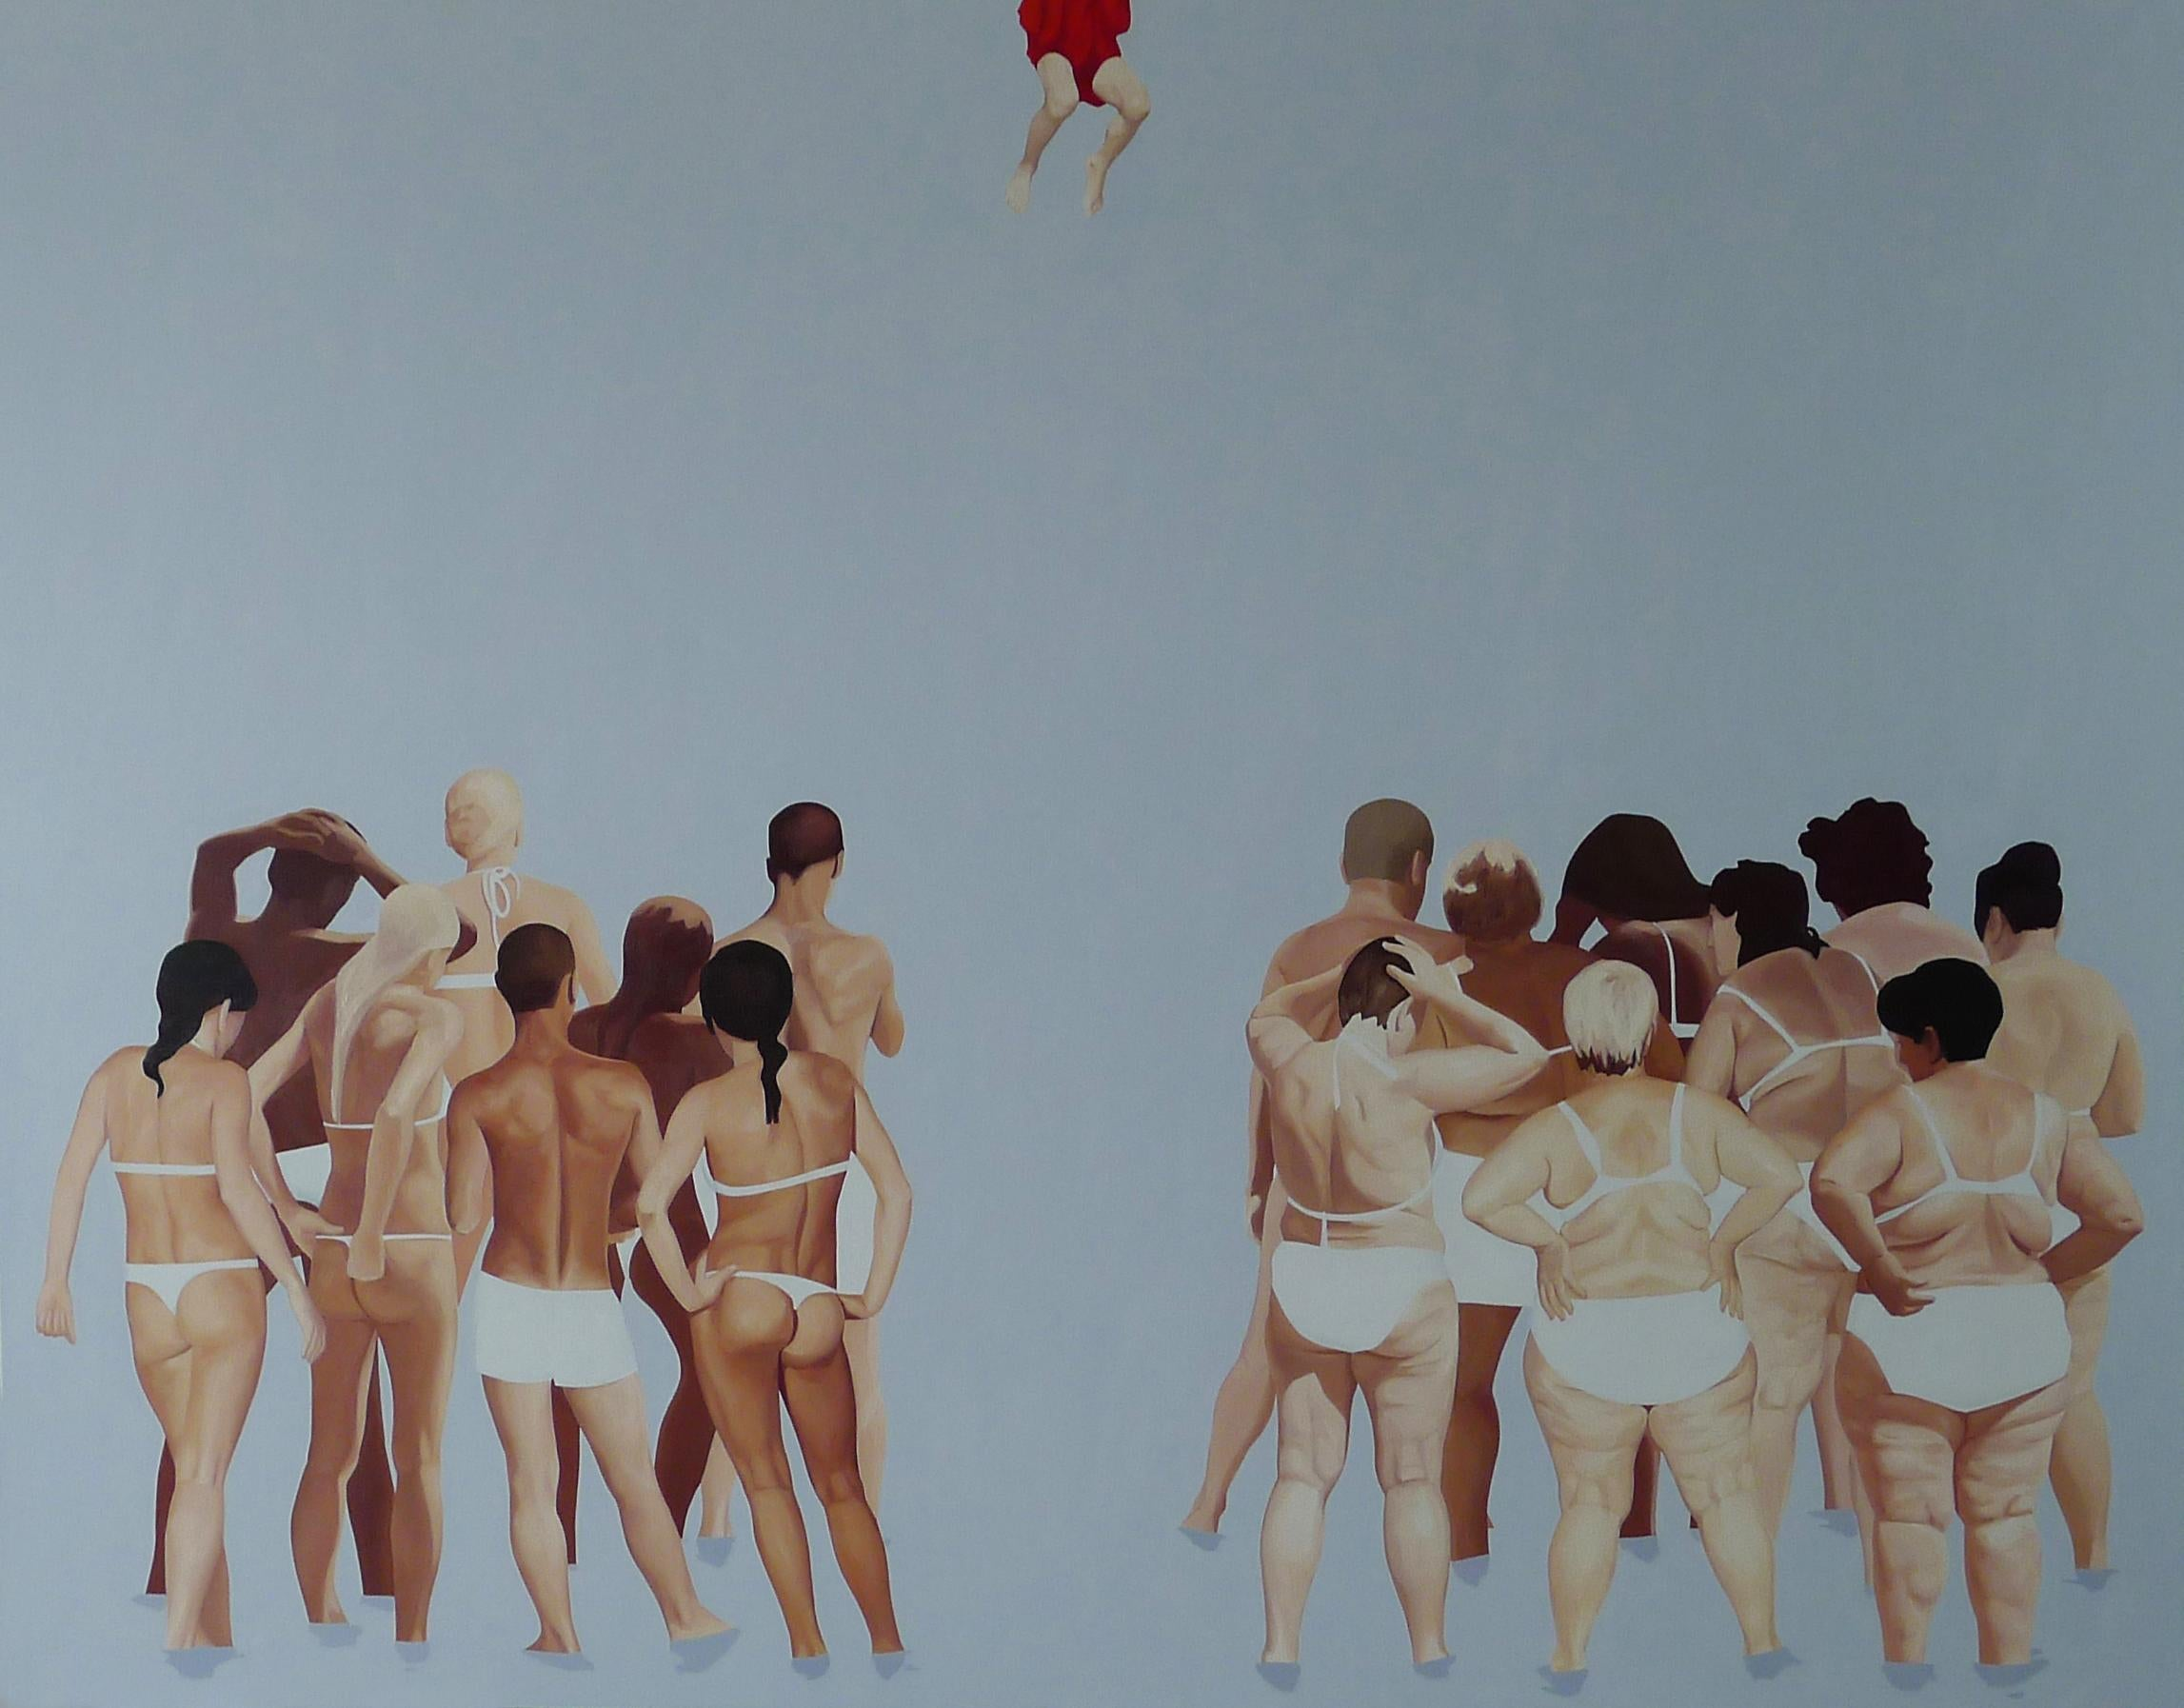 The Last Judgement 2 - Very Large Format,  Contemporary Oil Figurative Painting